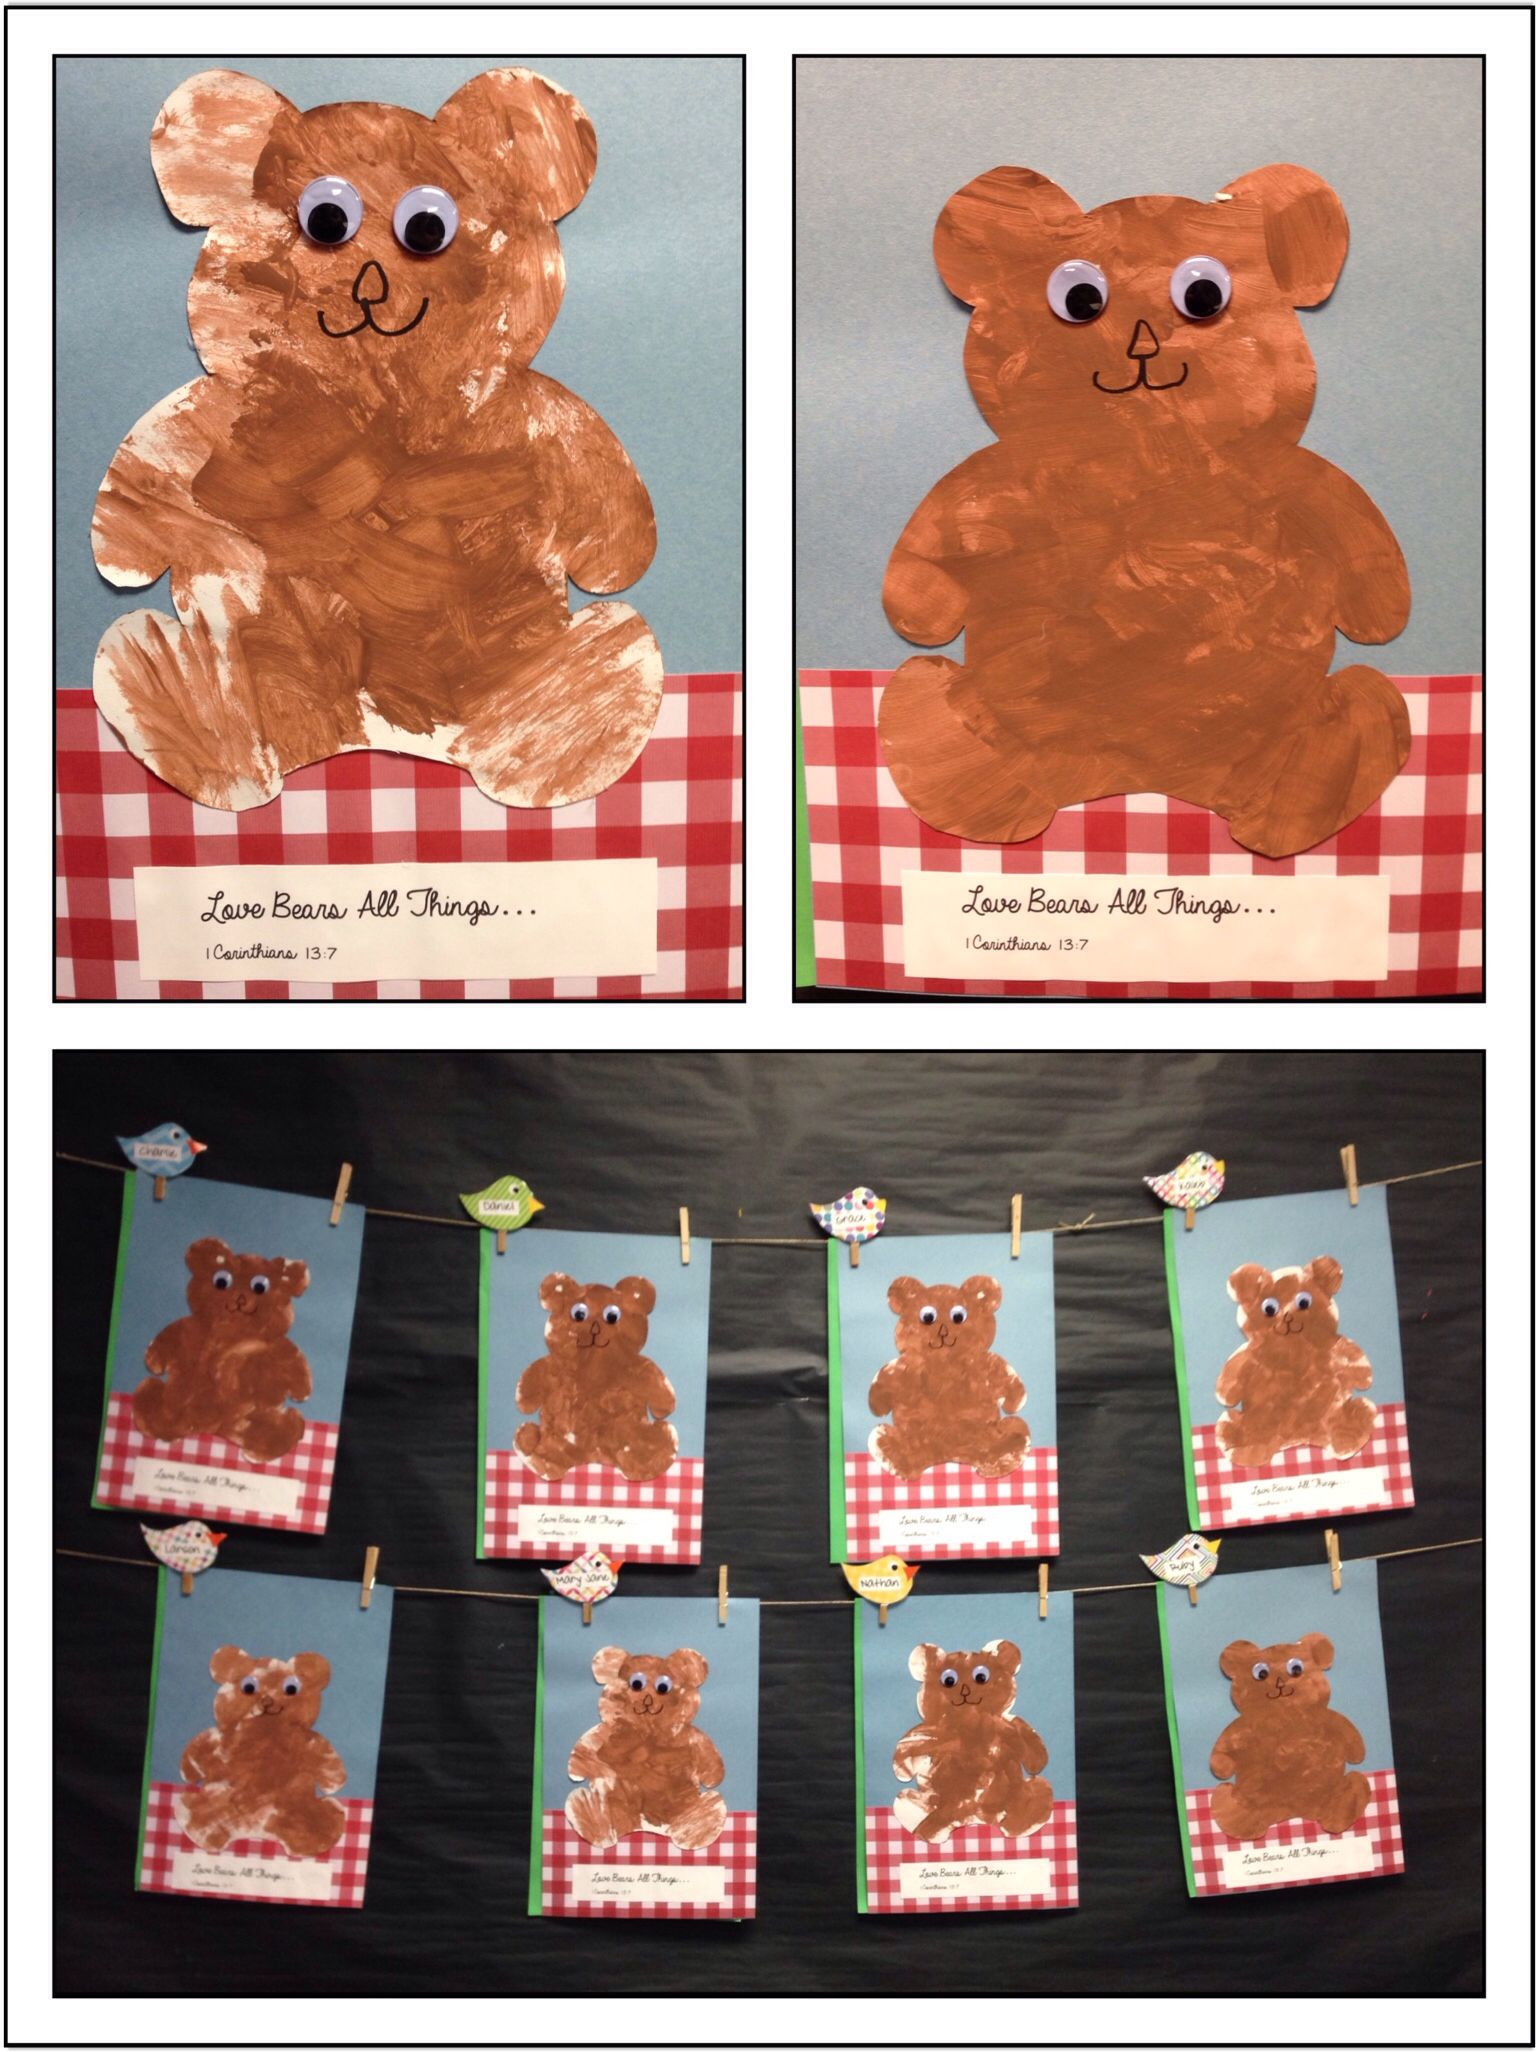 Teddy Bear Picnic With Images